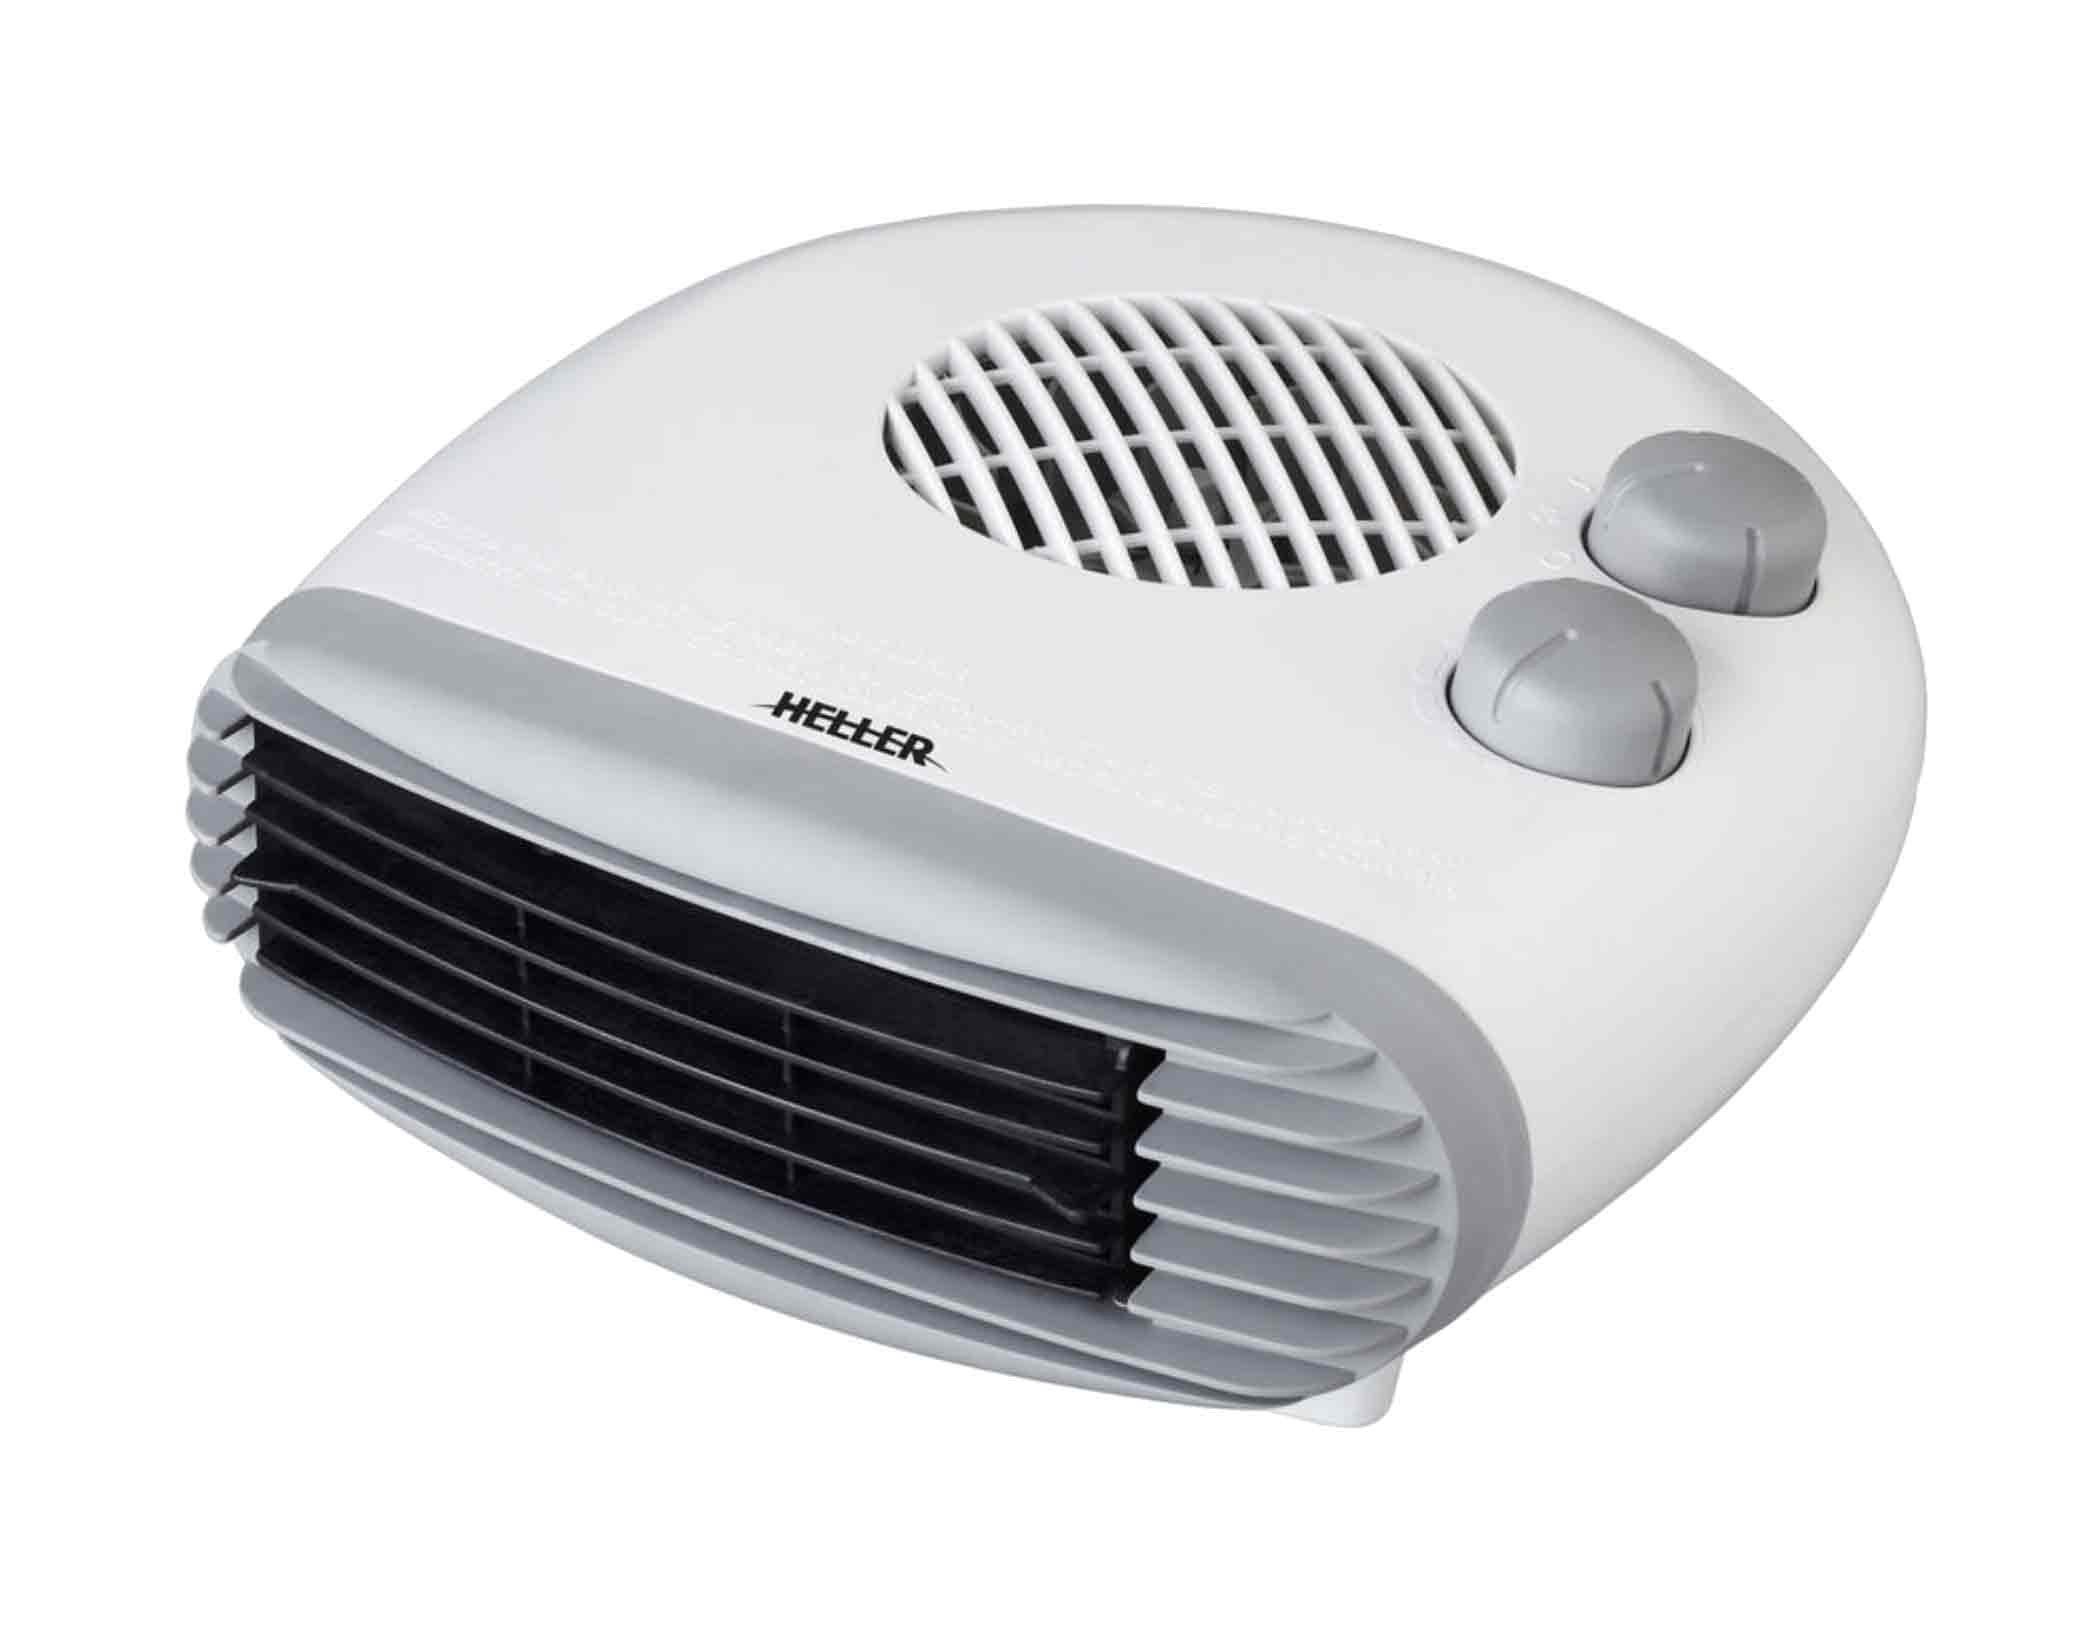 Heller HLF6 2400W Low Profile Fan Heater